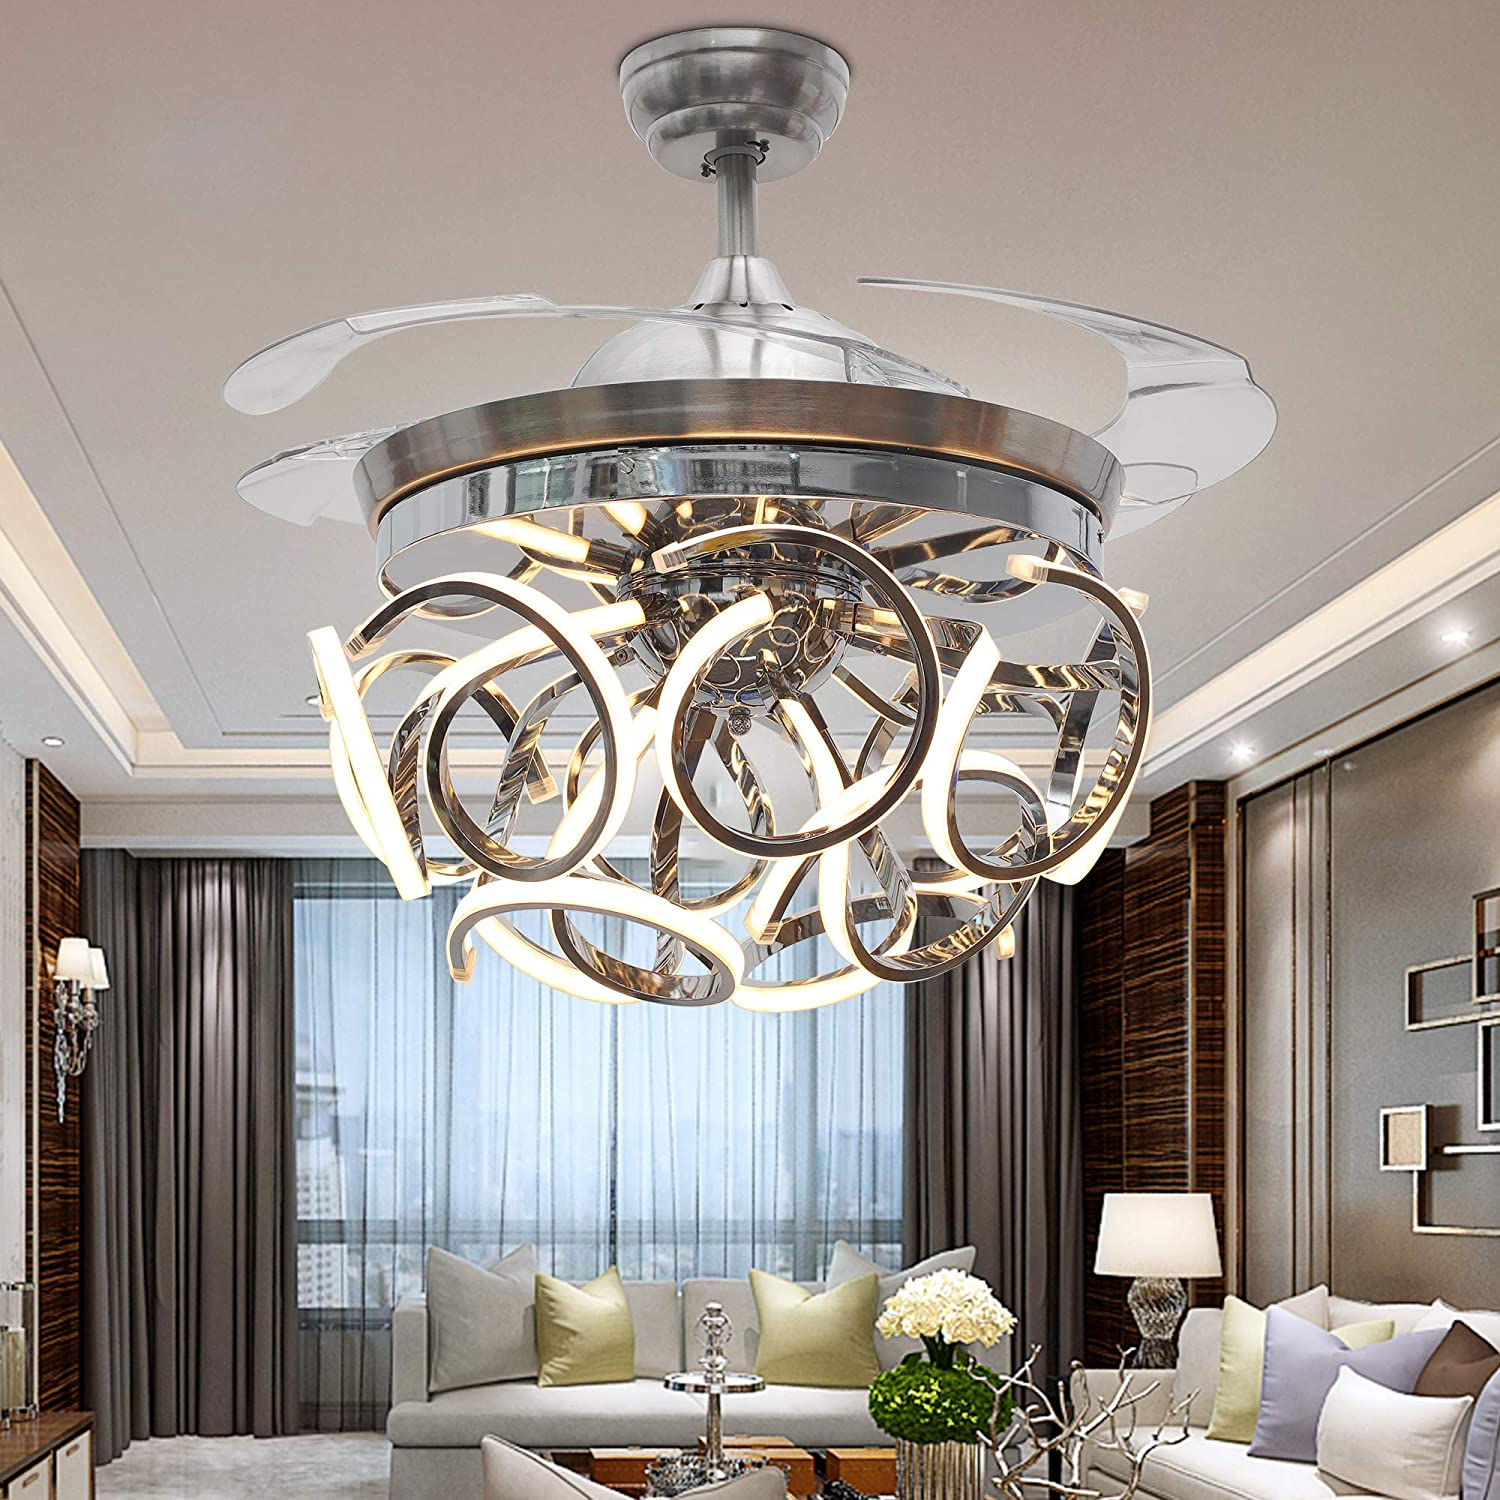 TiptonLight Ceiling Fan with 4 Plastic Folding Blades Irregular Shape with White Warm Nuetral Light Remote Control 42 Inch Ceiling Fan Light